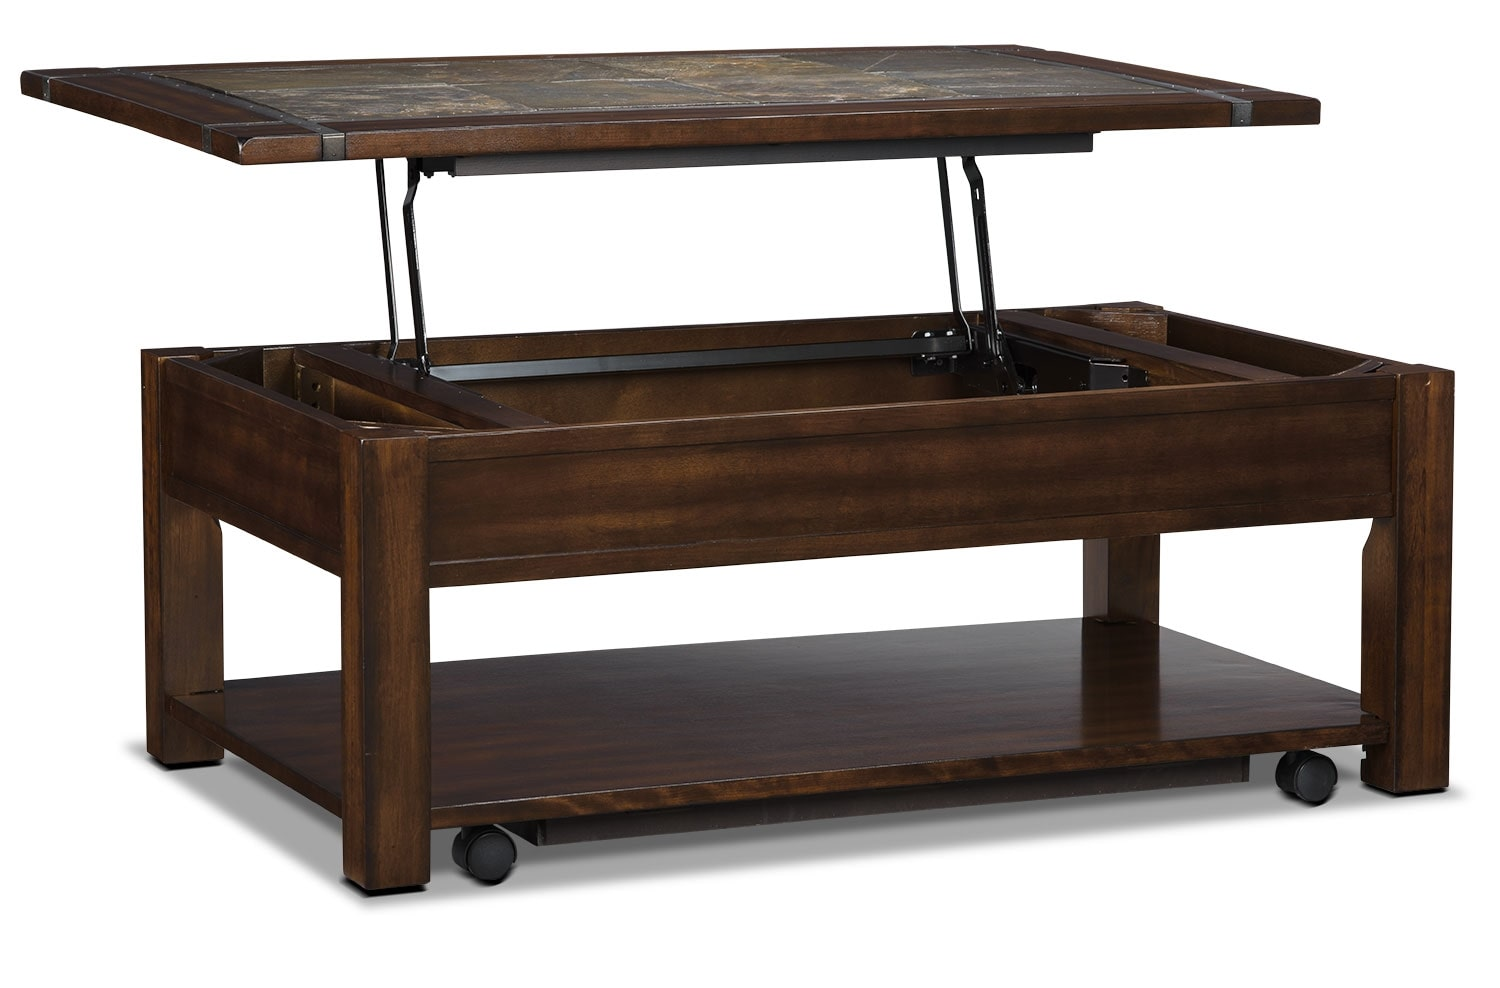 Roanoke coffee table with lift top and casters the brick Coffee tables with casters